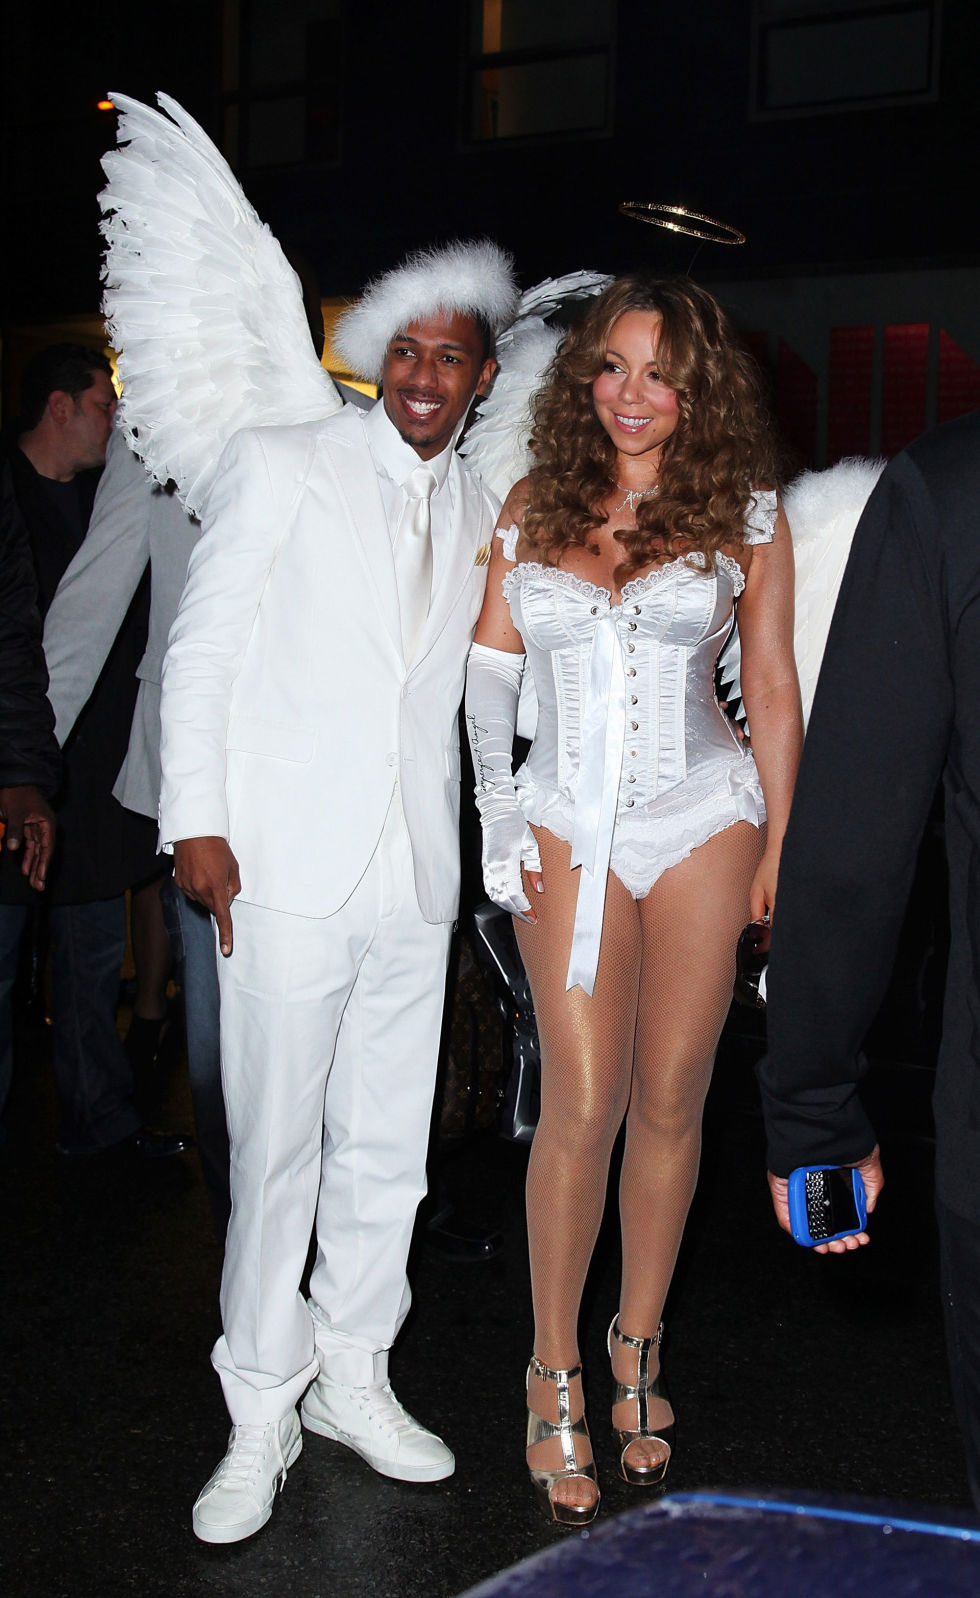 celebrity halloween costumes halloween red carpet looks - Halloween Costume Celebrities